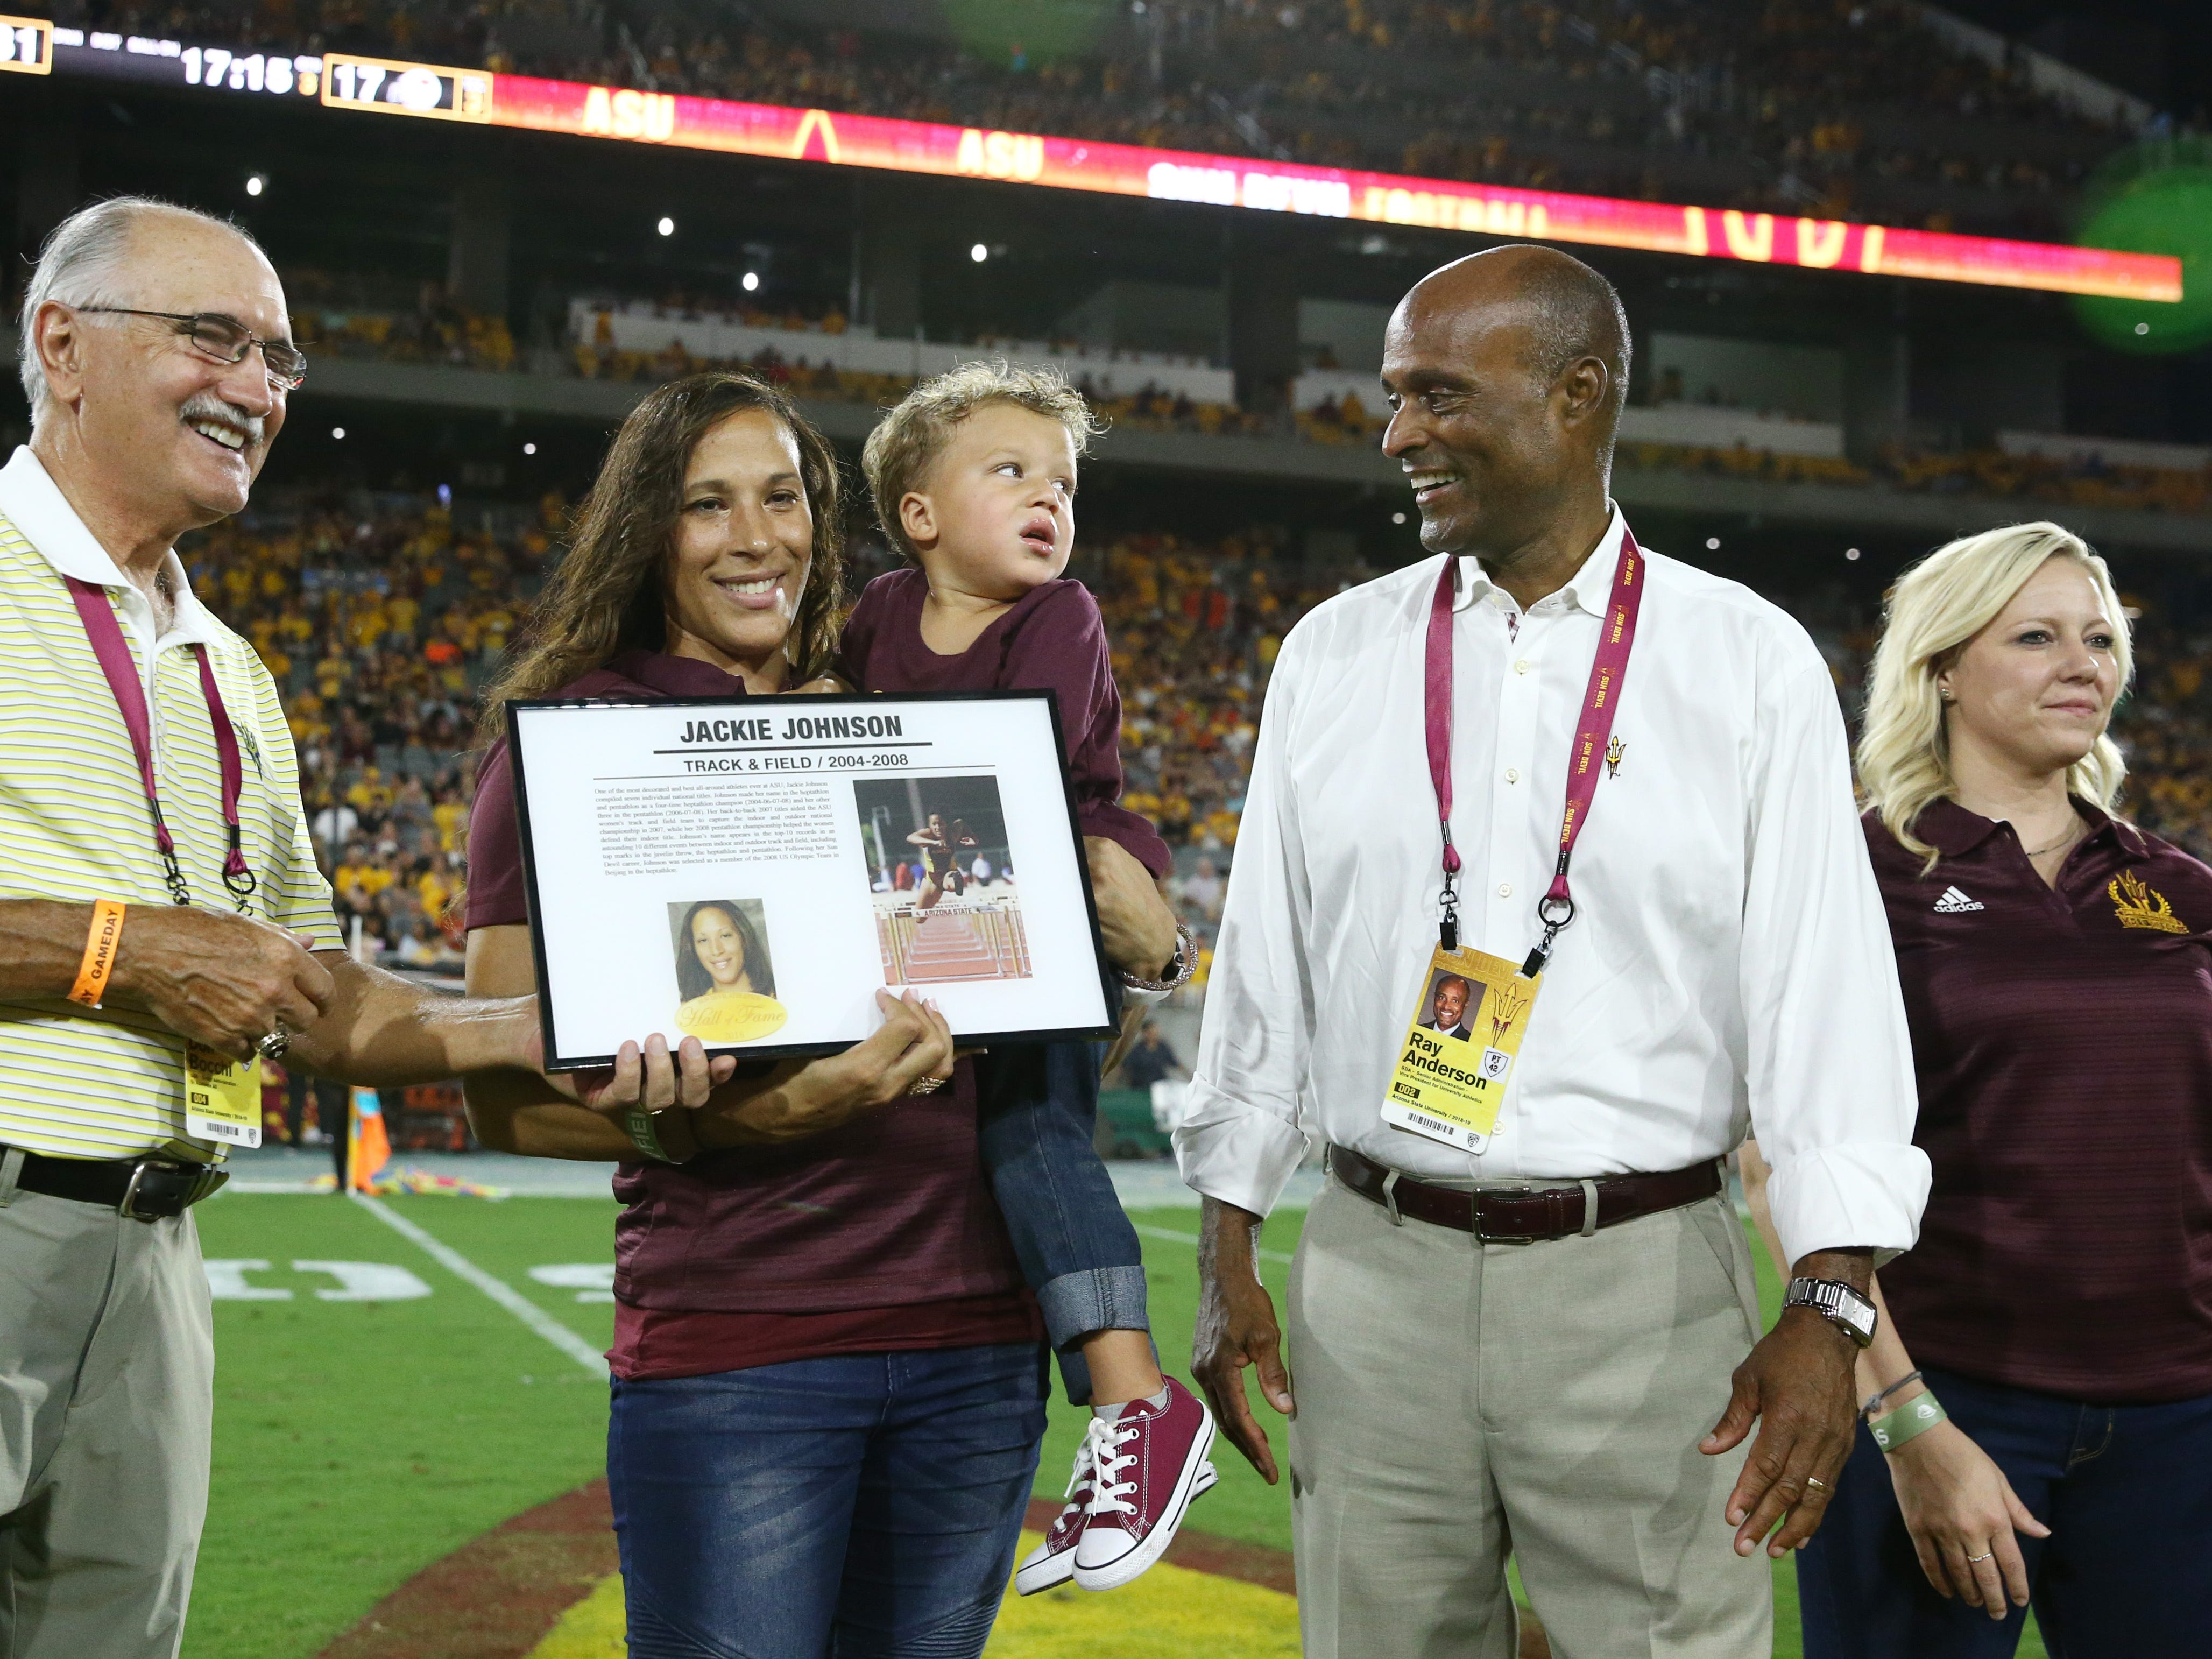 Arizona State track and field star Jackie Johnson is welcomed into the ASU Athletics Hall of Frame on Sep. 29, 2018, at Sun Devil Stadium.